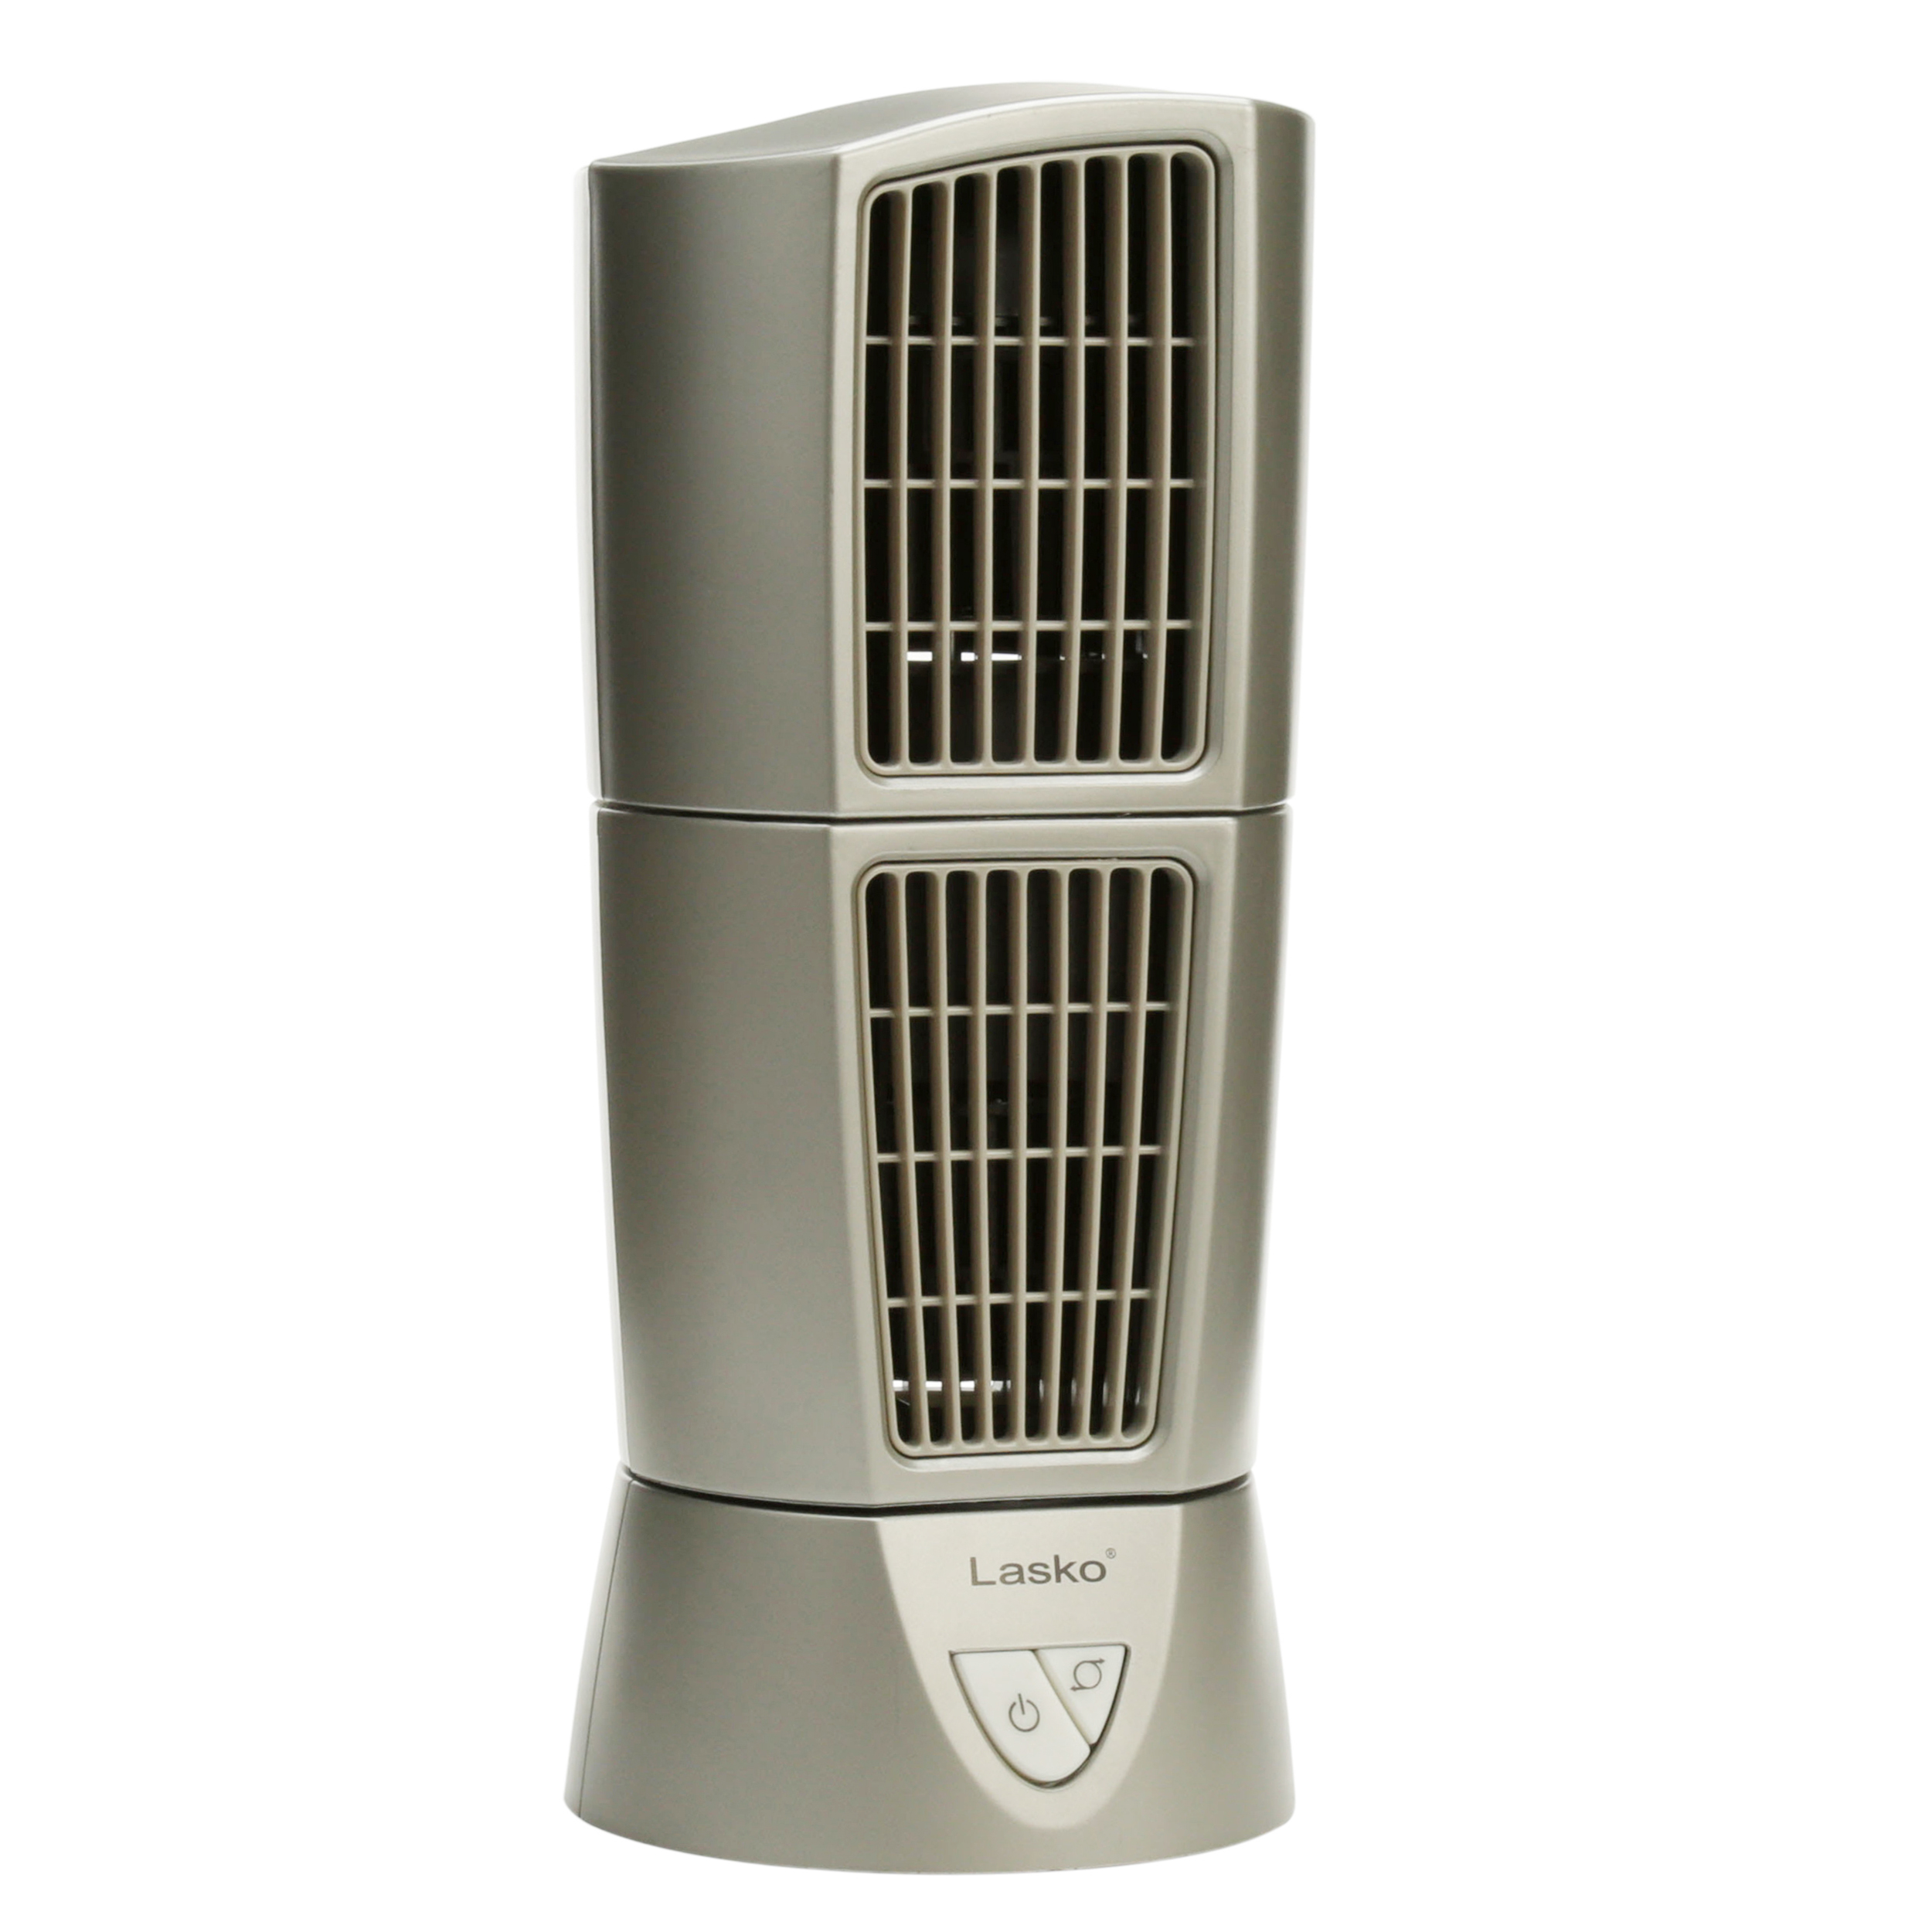 Lasko 14 platinum desktop wind tower oscillating 3 speed fan model lasko 14 platinum desktop wind tower oscillating 3 speed fan model 4910 gray walmart publicscrutiny Image collections